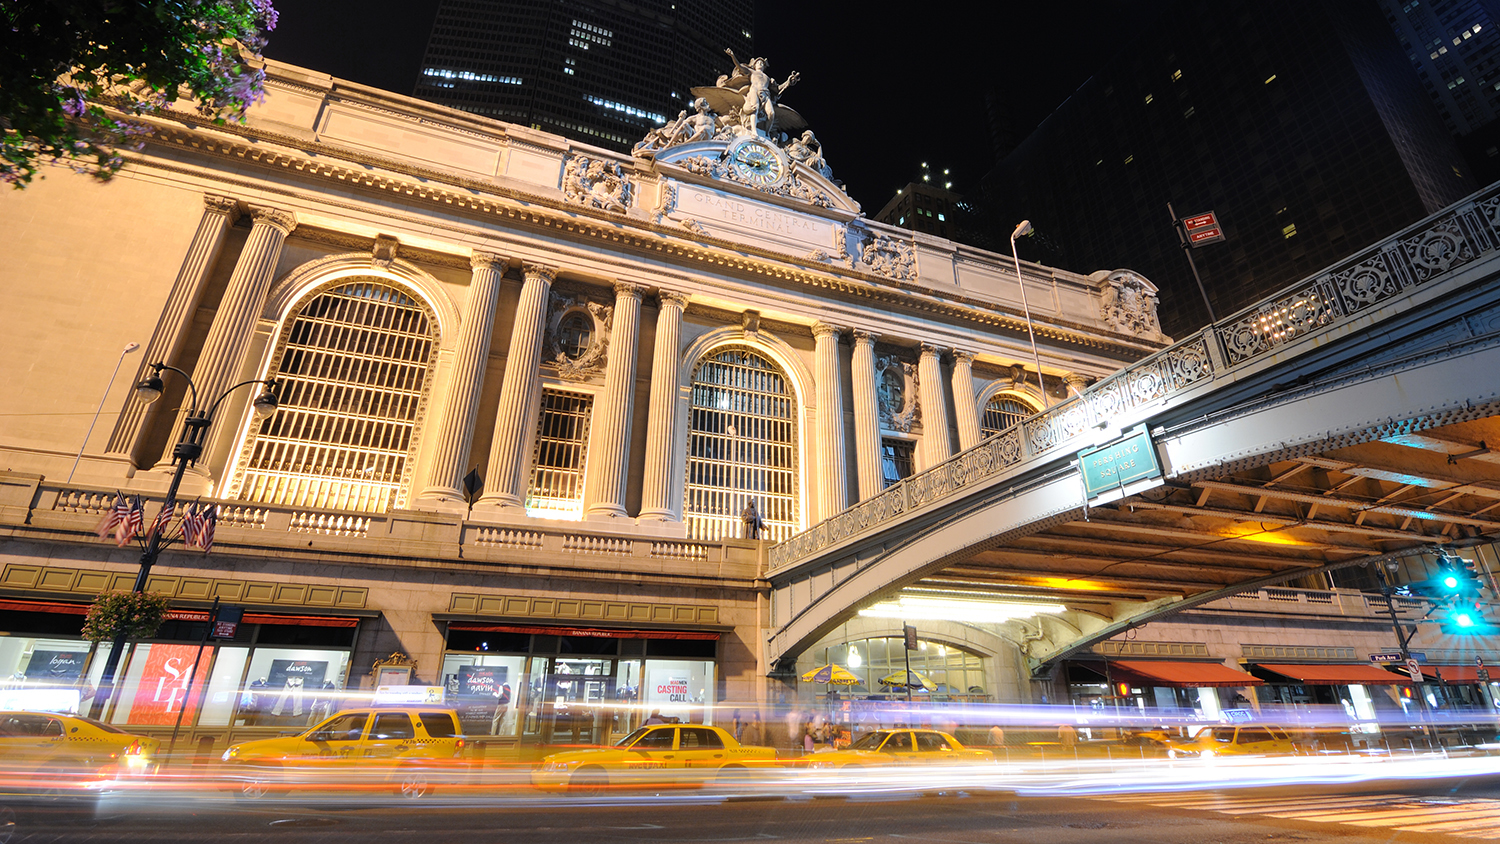 Eat and drink for free at Grand Central every Wednesday this month